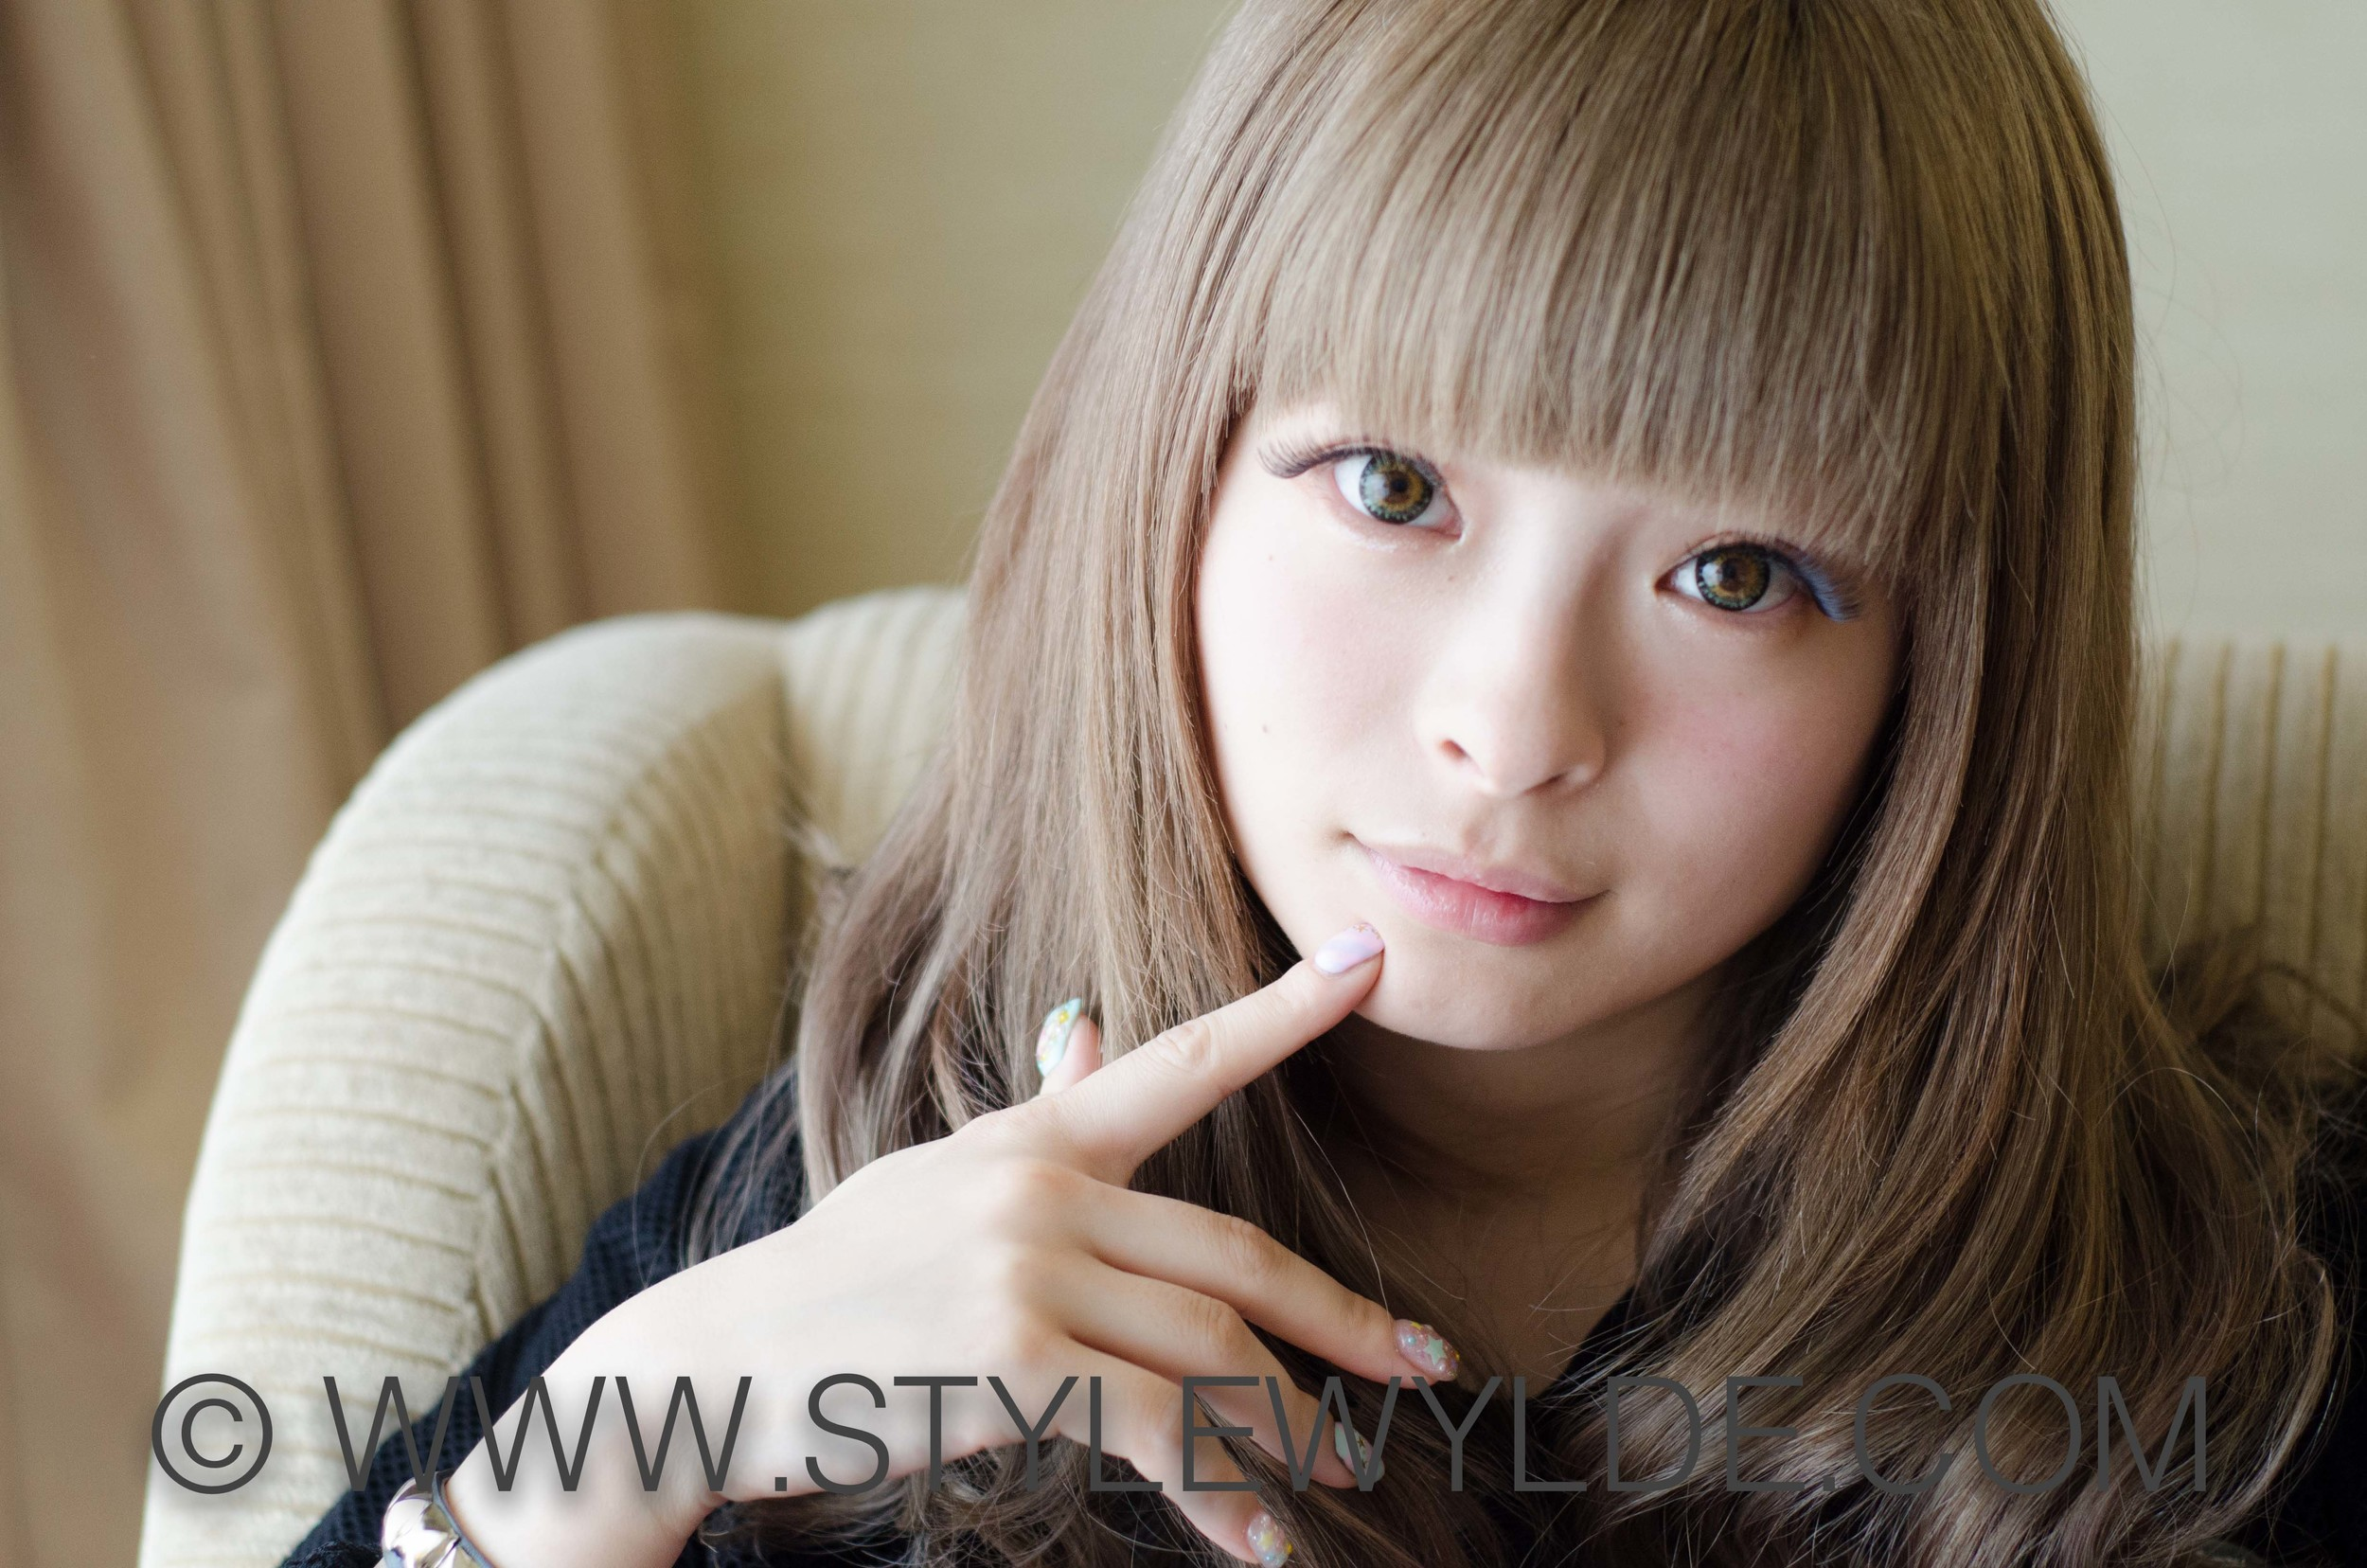 StyleWylde_KyaryPamyuPamyu_Exclusive_july13 (6 of 8).jpg